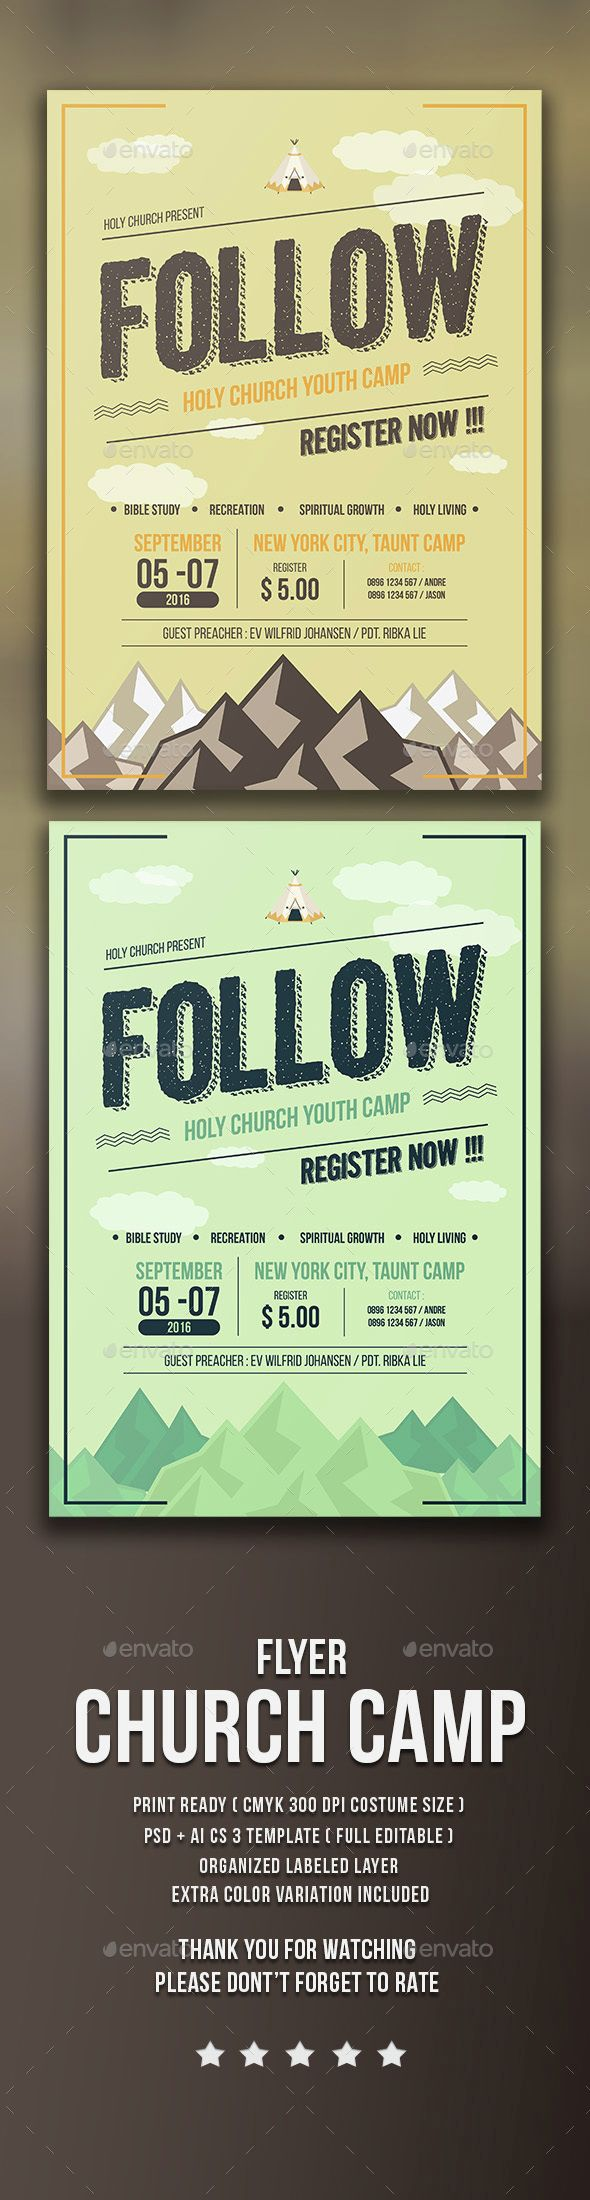 25+ beautiful Flyer design ideas on Pinterest | Graphic design ...